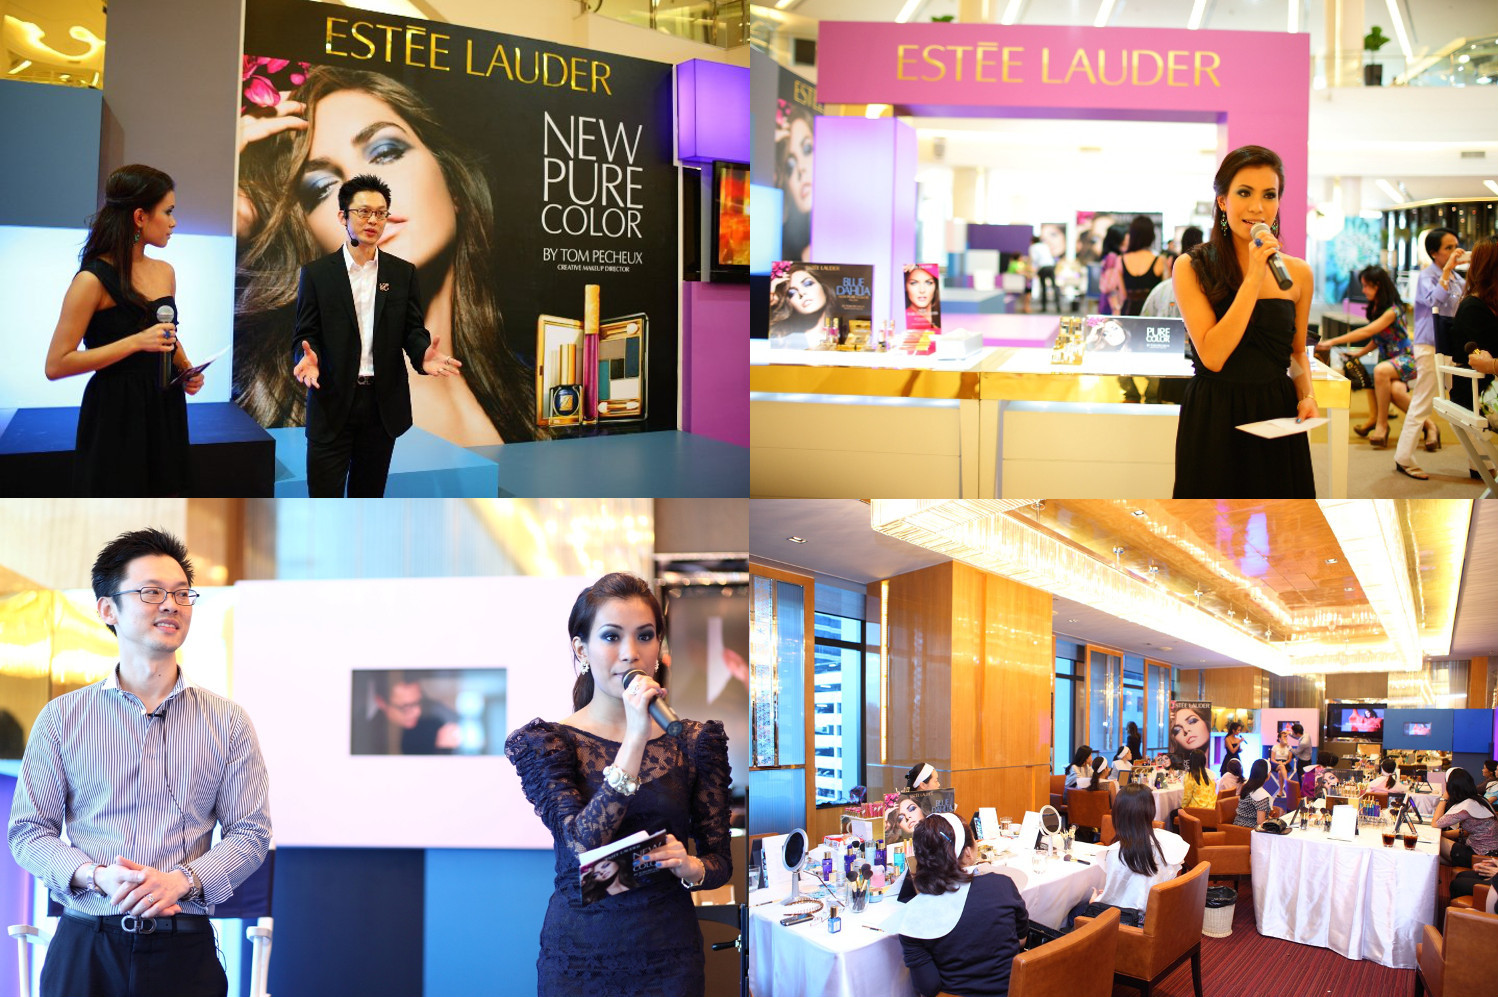 ESTEE LAUDER MC & Facilitator